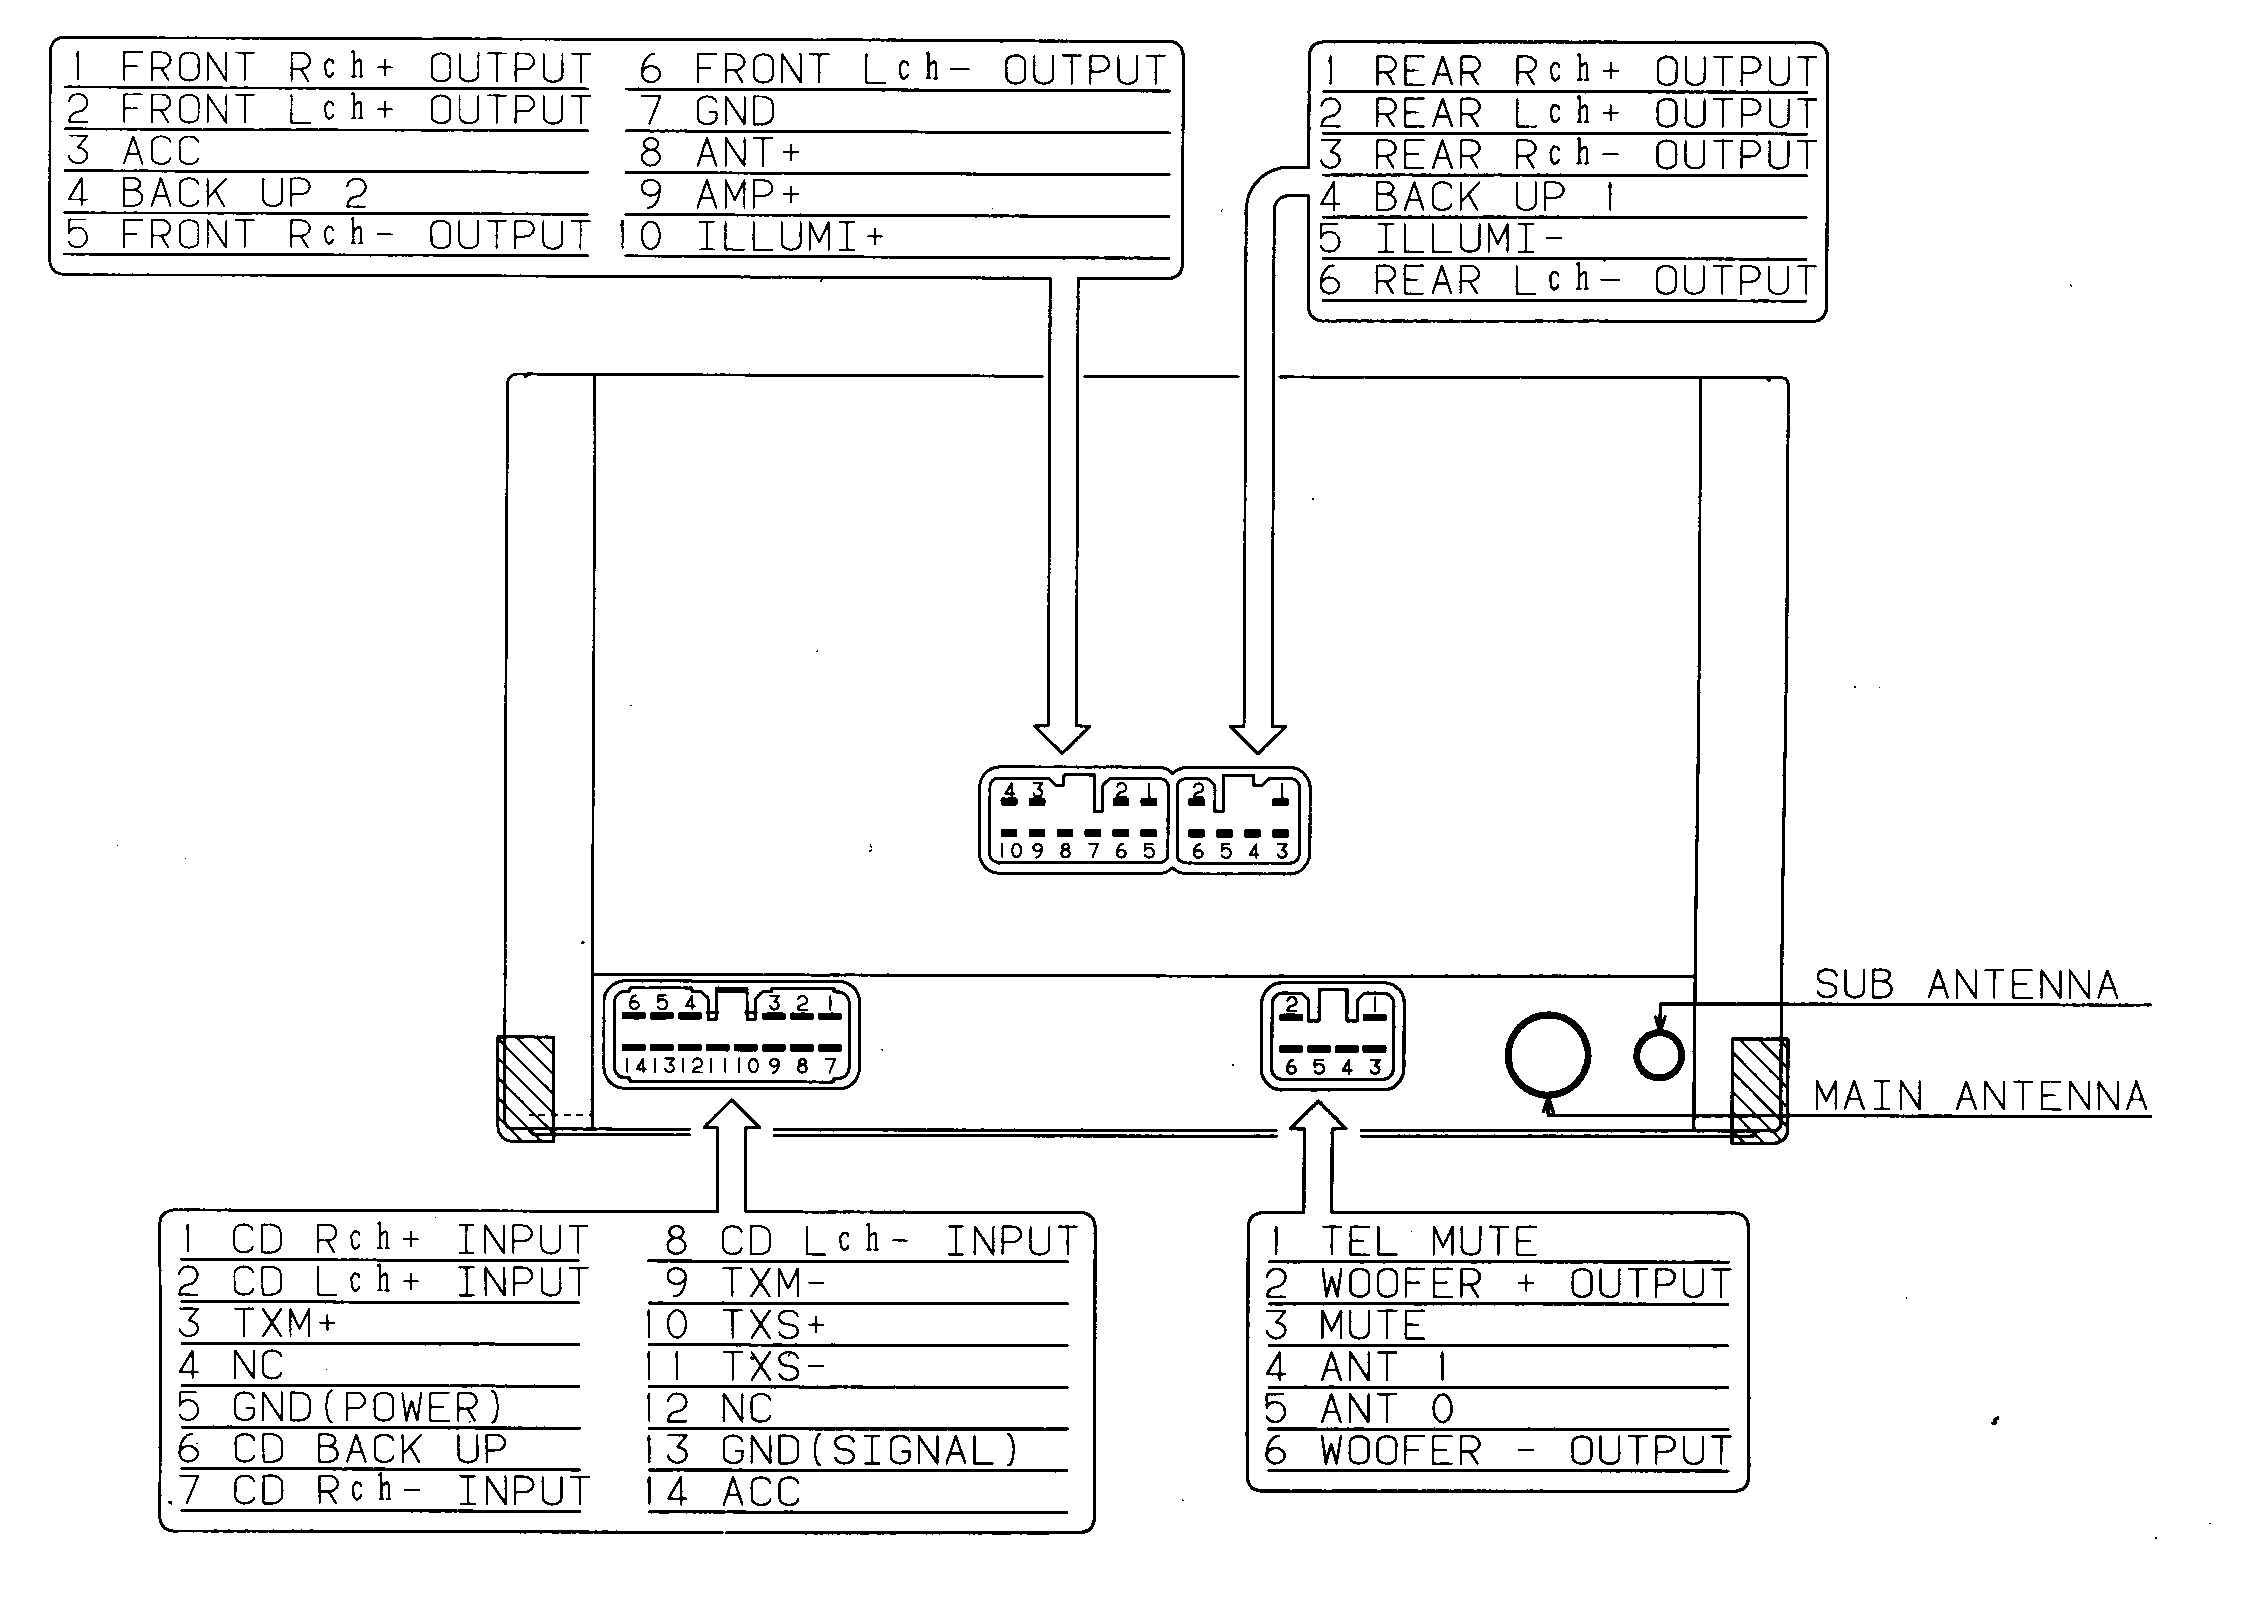 Lexus car stereo wiring diagram harness pinout connector wire lexus car radio stereo audio wiring diagram autoradio connector 2007 lexus is 250 wiring diagram at arjmand.co